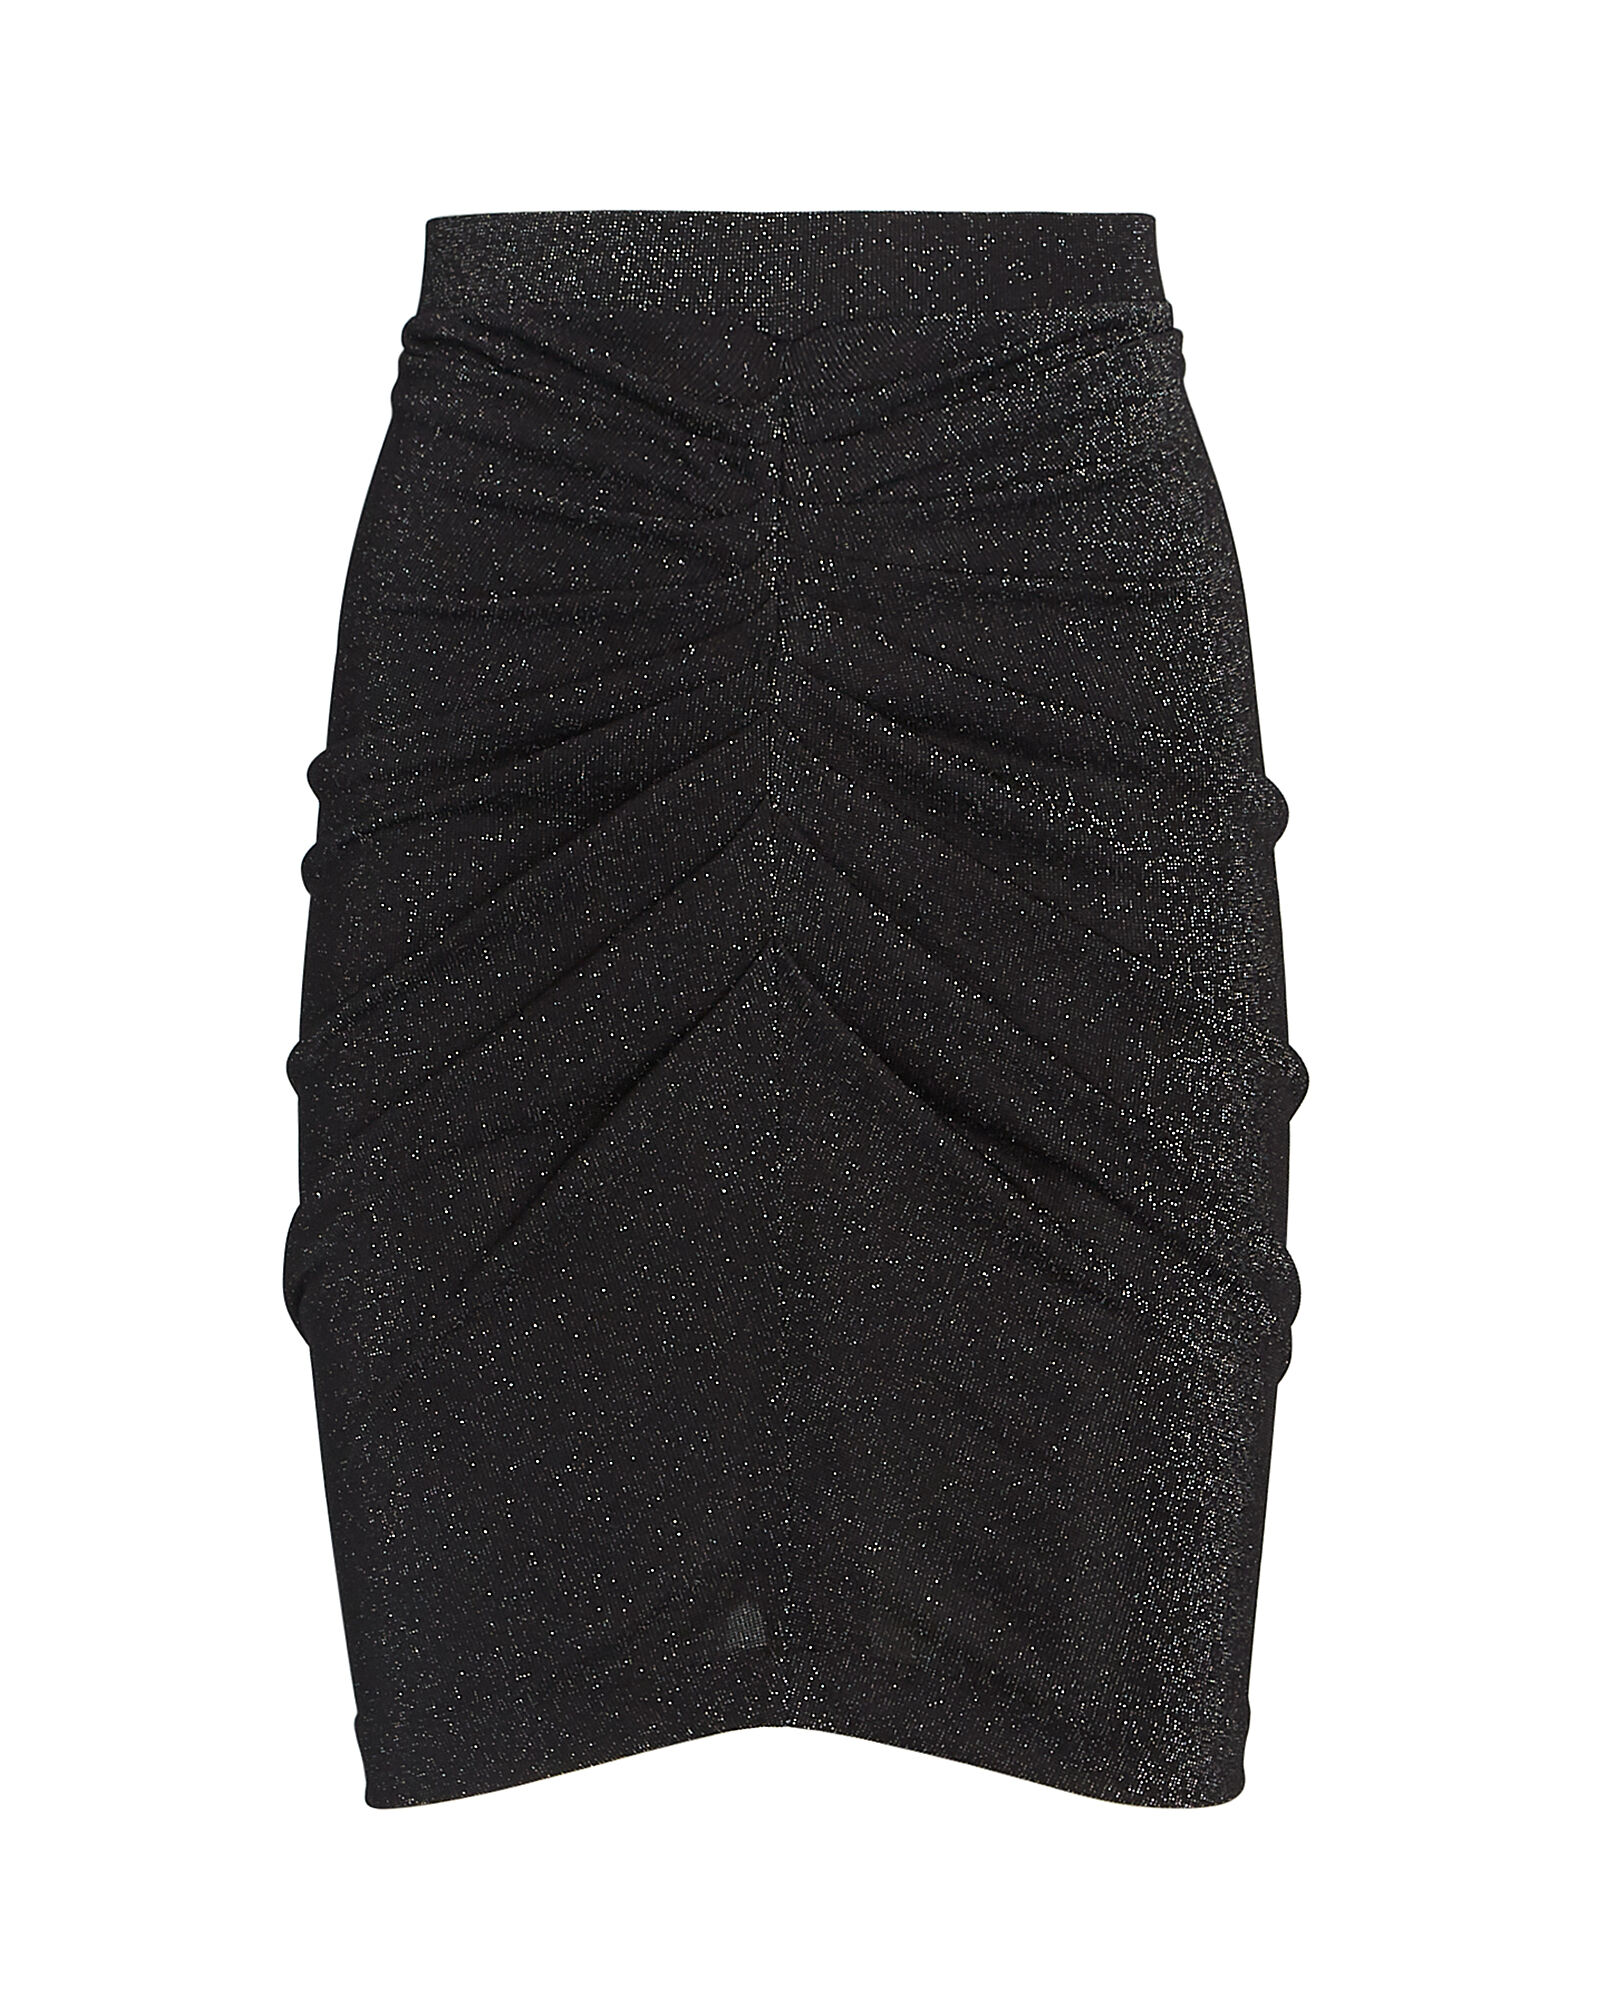 Sargas Ruched Lurex Mini Skirt, , hi-res